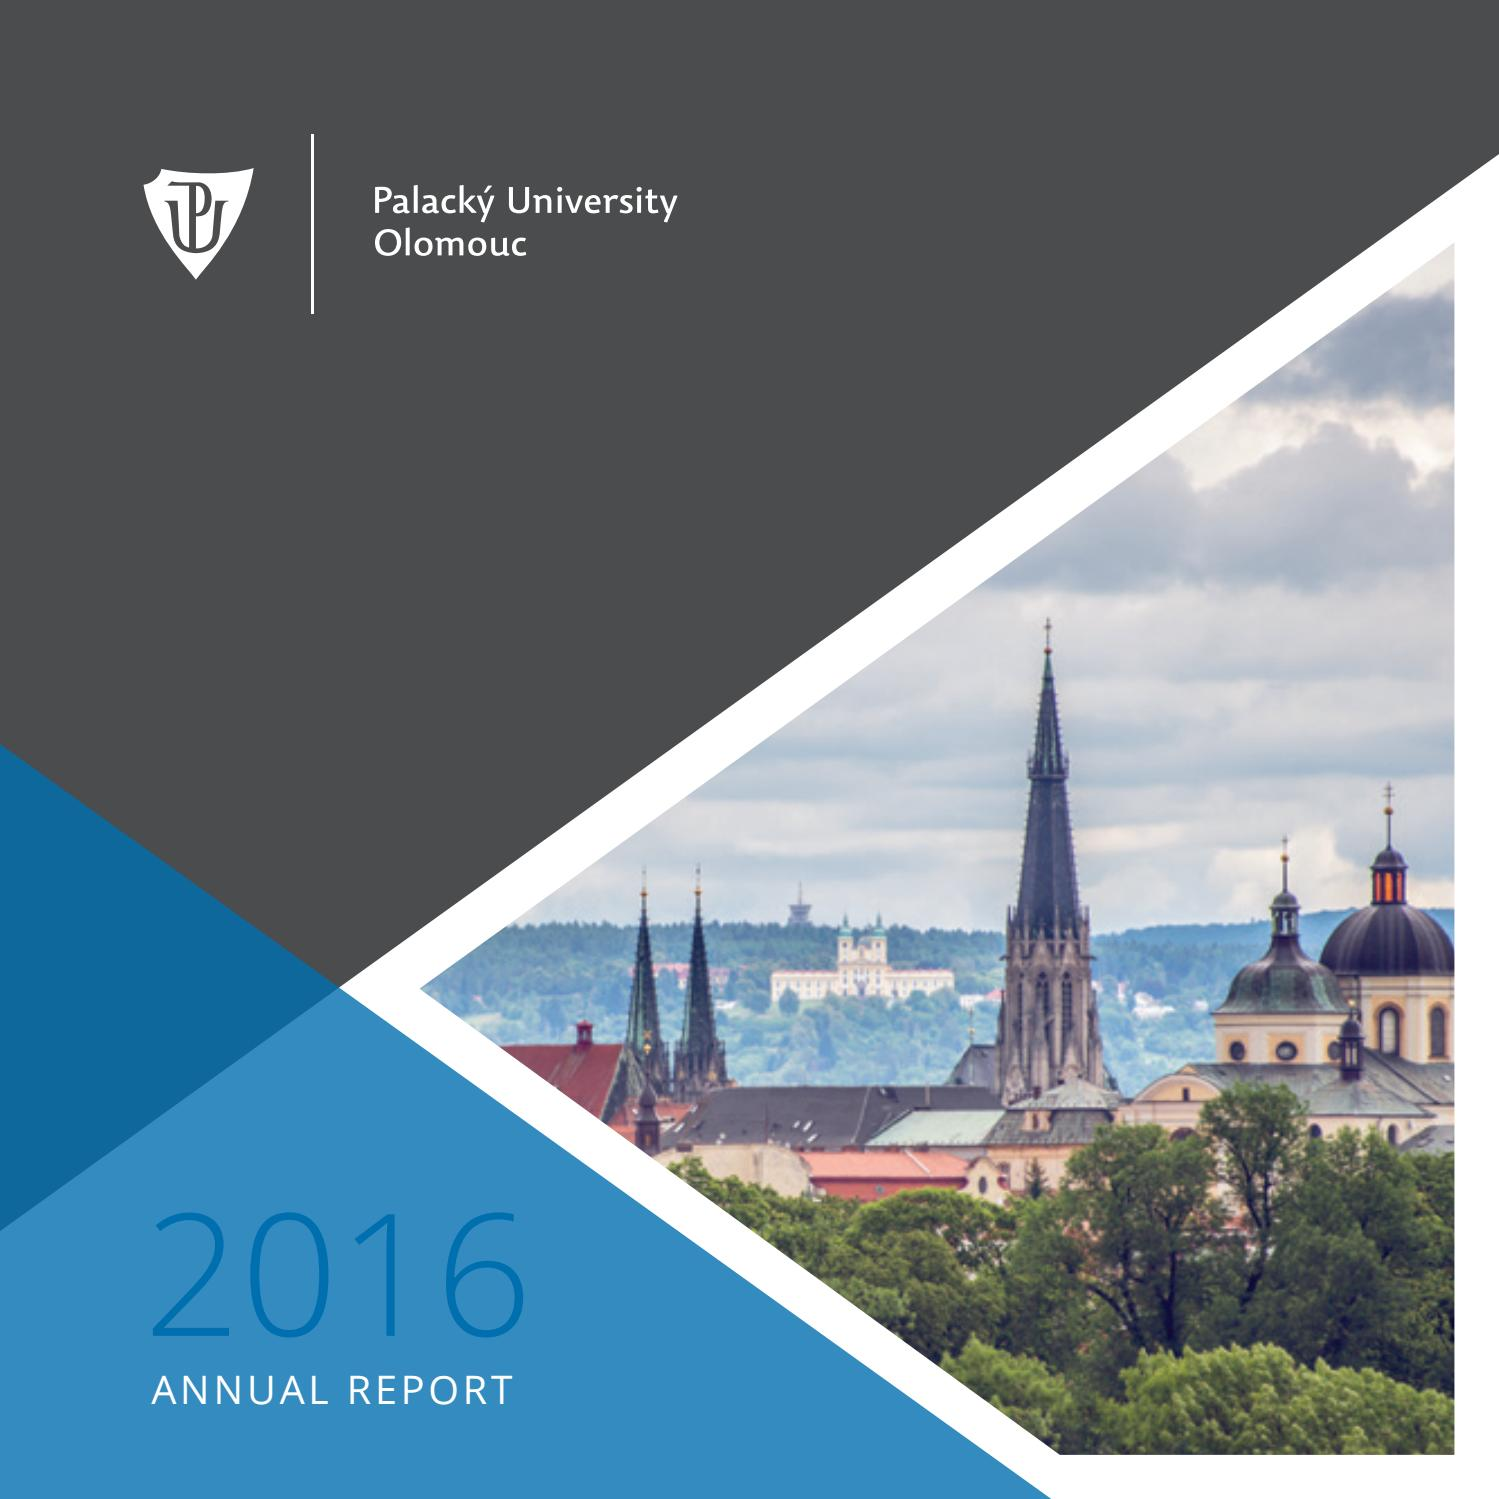 Palack½ University Annual Report 2016 by Palacky University issuu